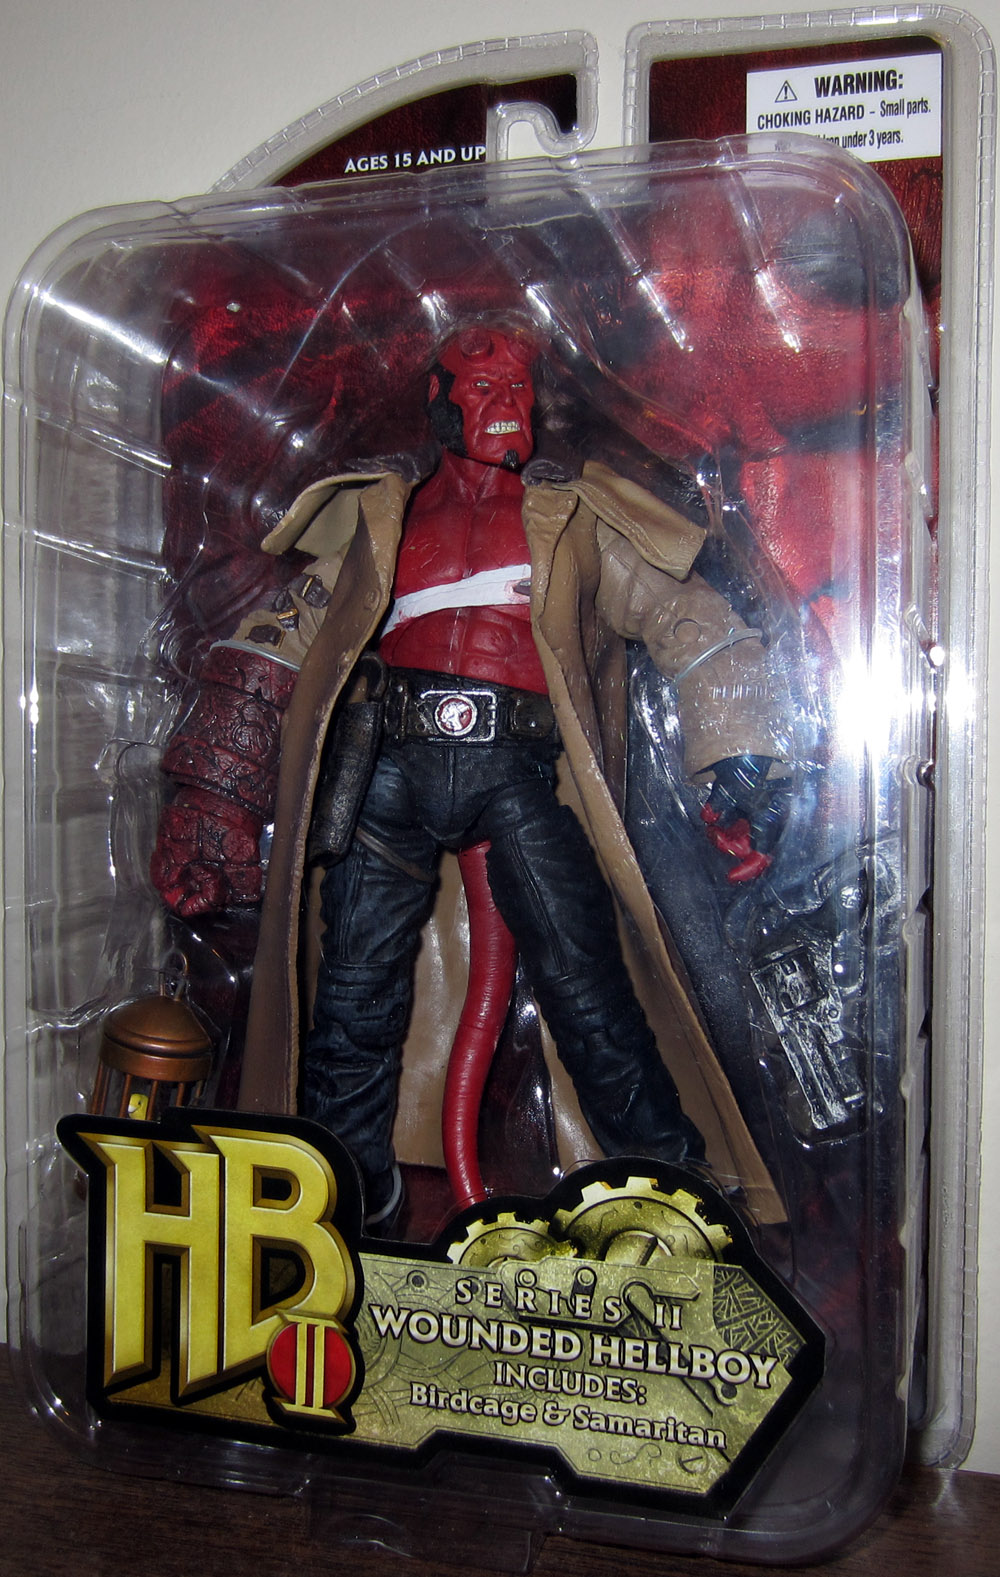 Wounded Hellboy (series II)